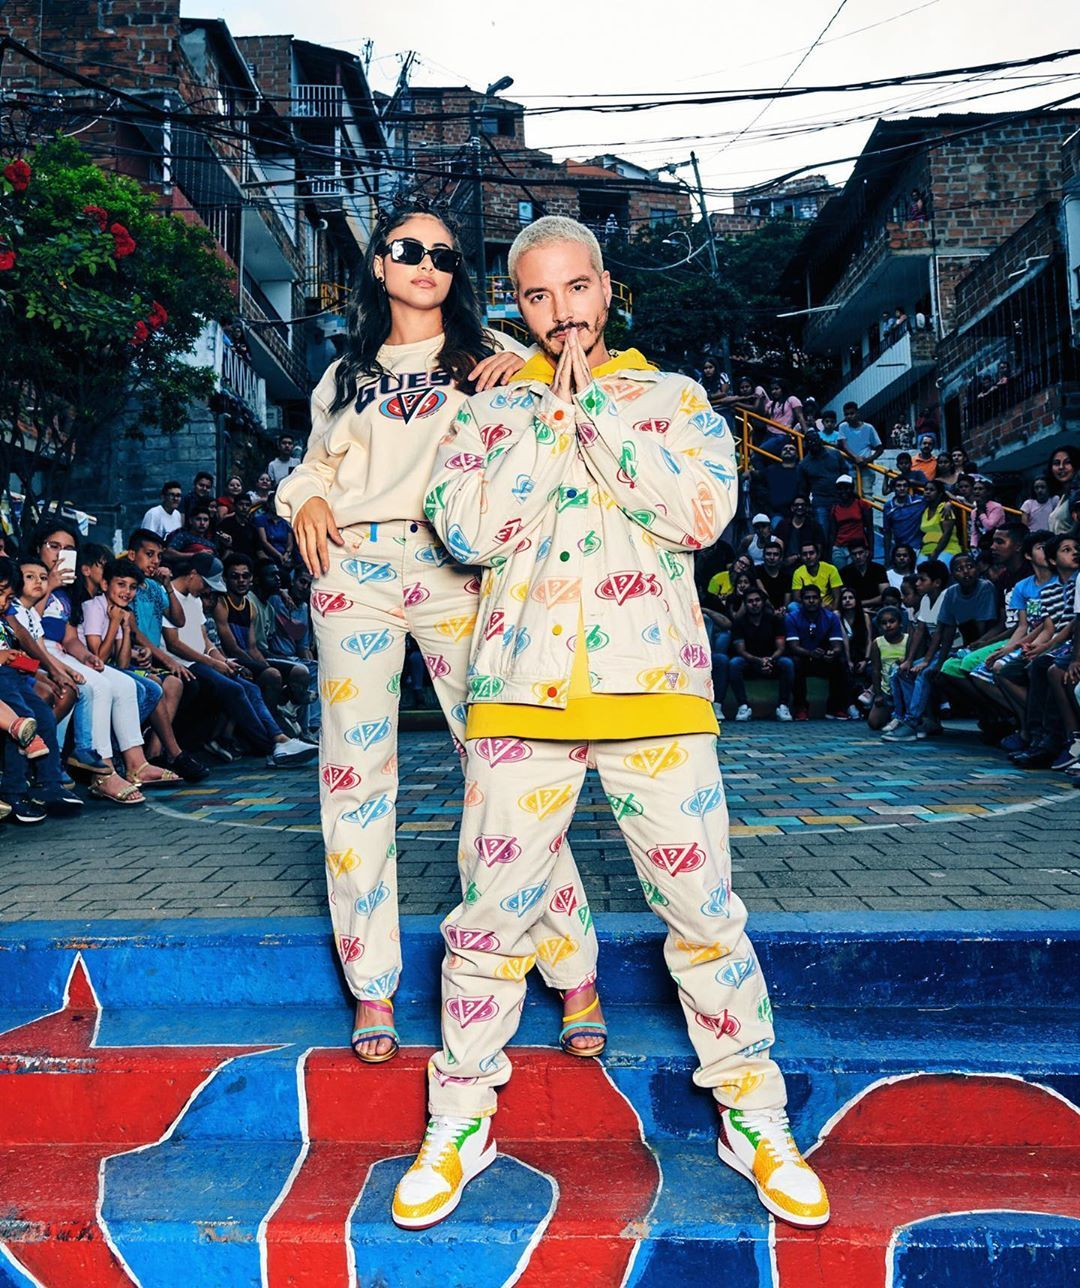 J Balvin On Instagram Colores Coming Soon With My Partners At Guess Guessxjbalvin Guesspartner Y El A In 2020 Fashion Two Piece Pant Set Branding Inspiration